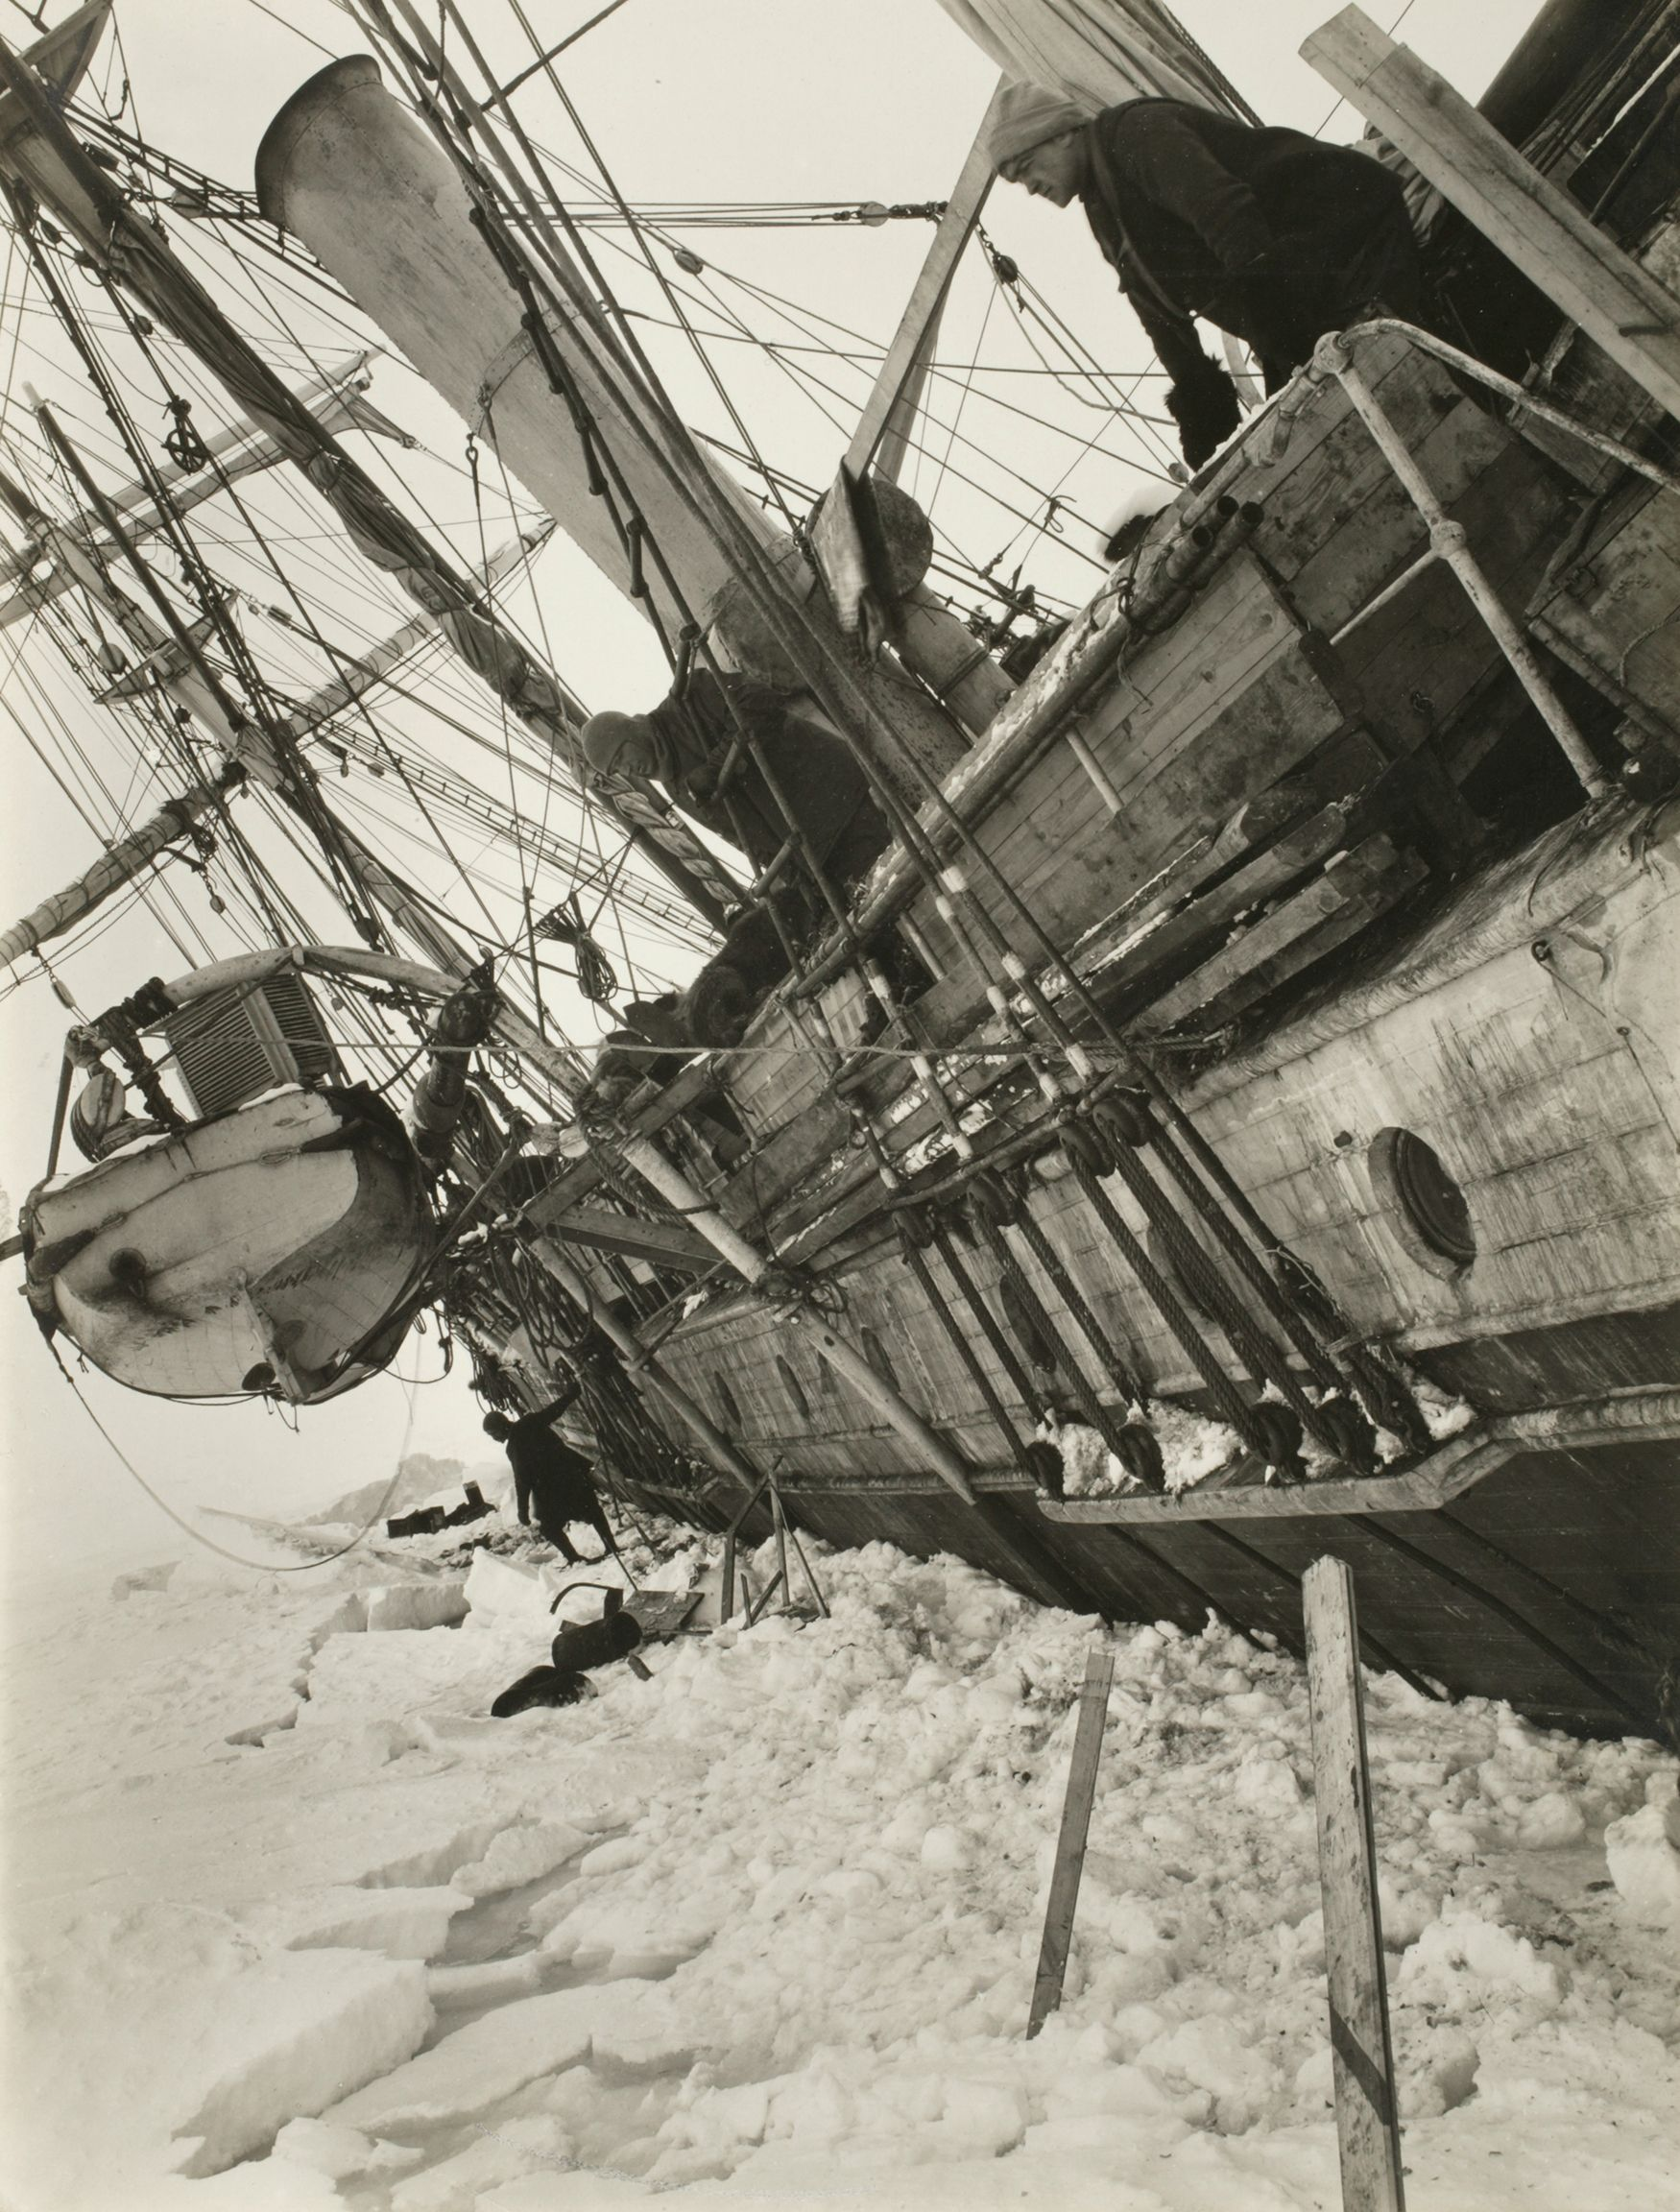 Shackletons Imperial Trans Antarctic Expedition 1914